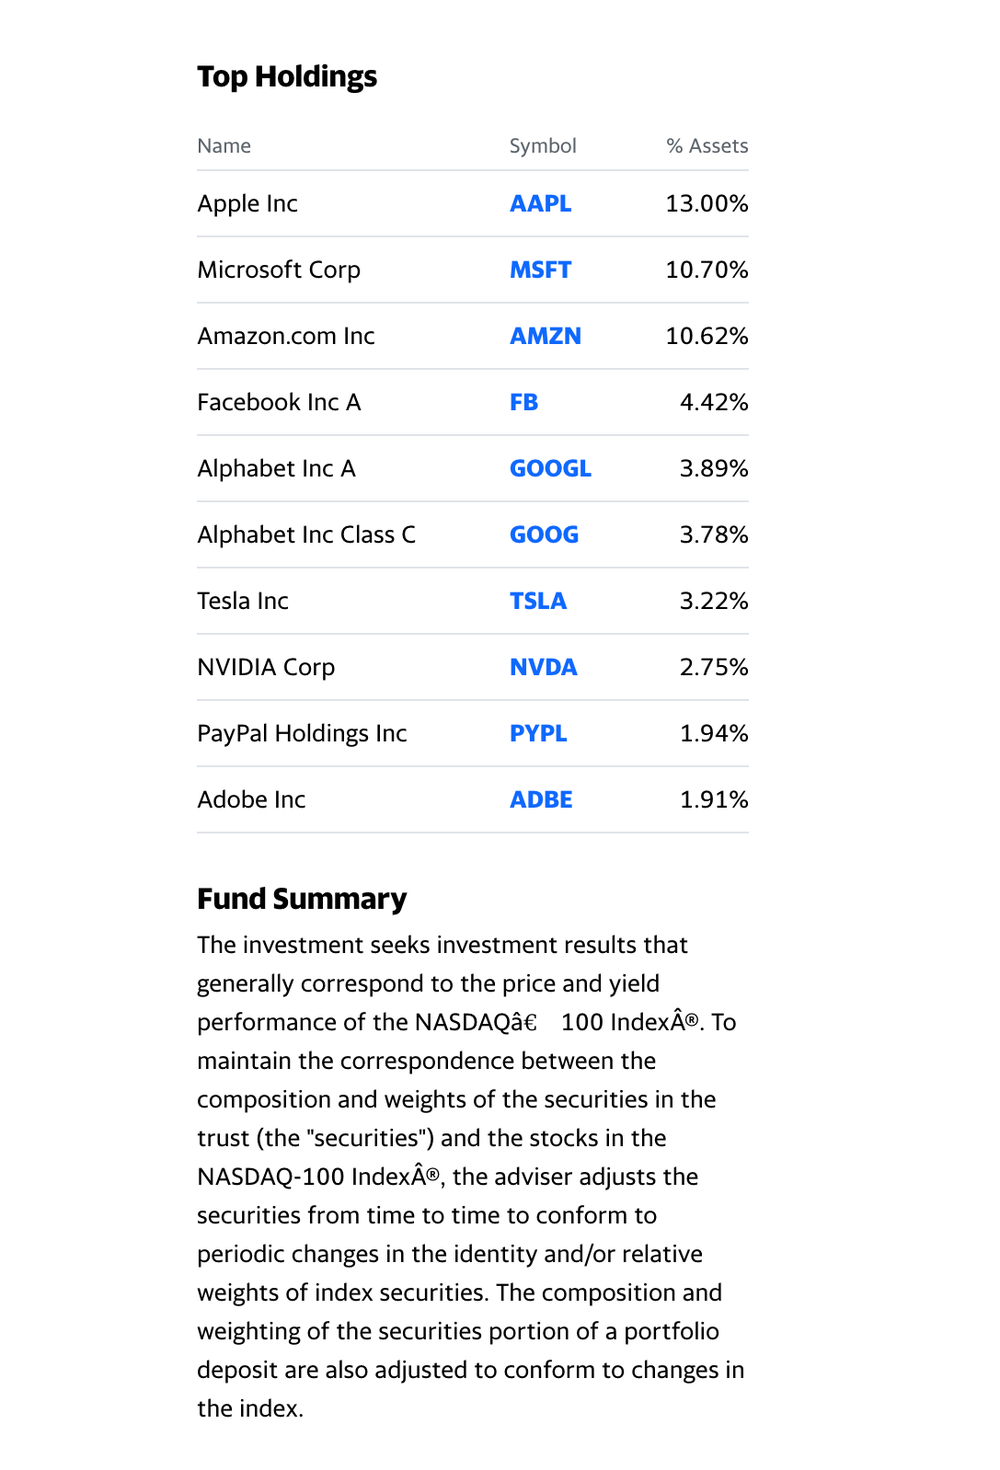 The fund summary and top holdings include: